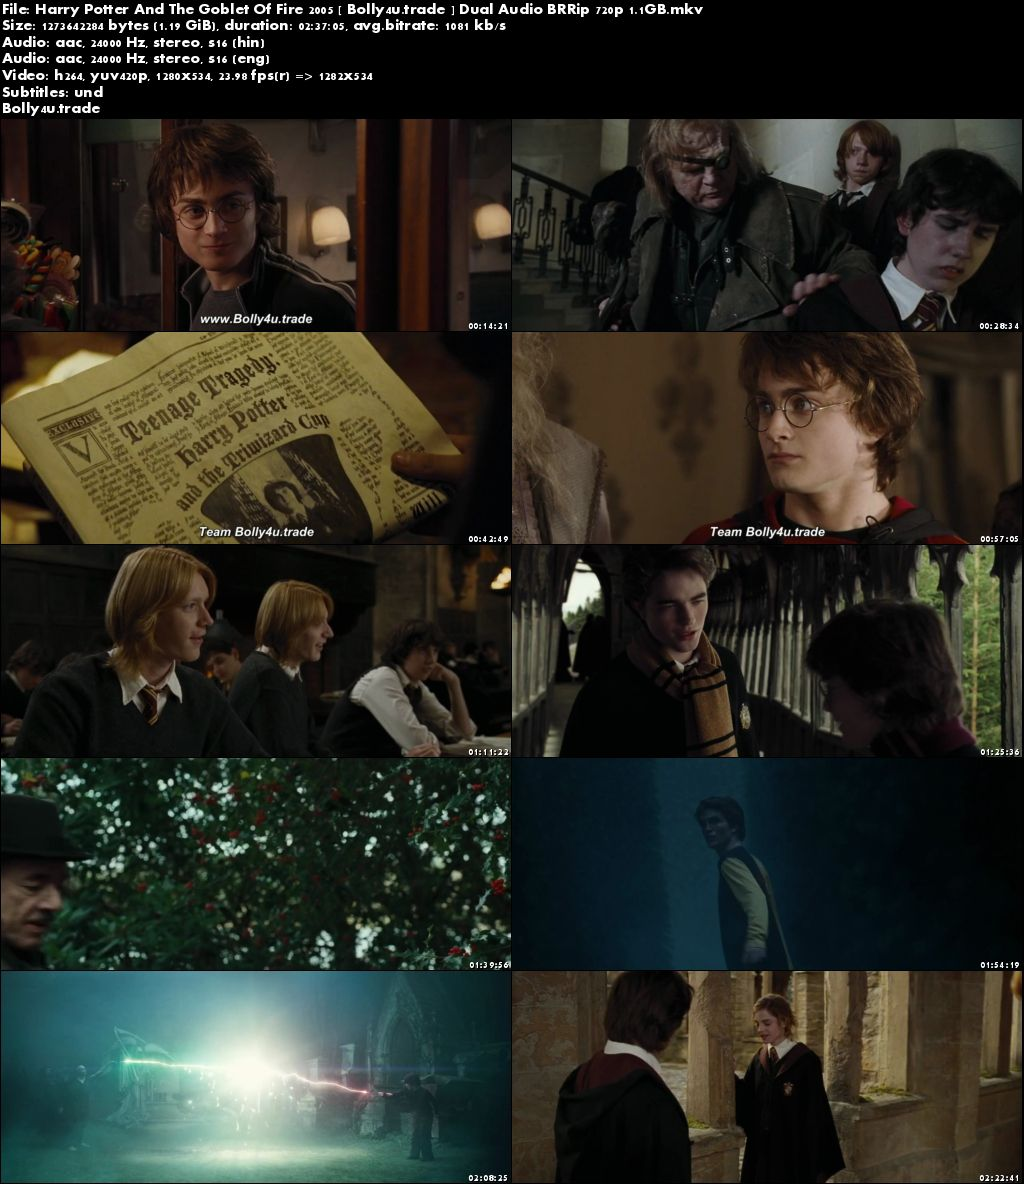 Harry Potter And The Goblet Of Fire 2005 BRRip 1Gb Hindi Dual Audio 720p Download